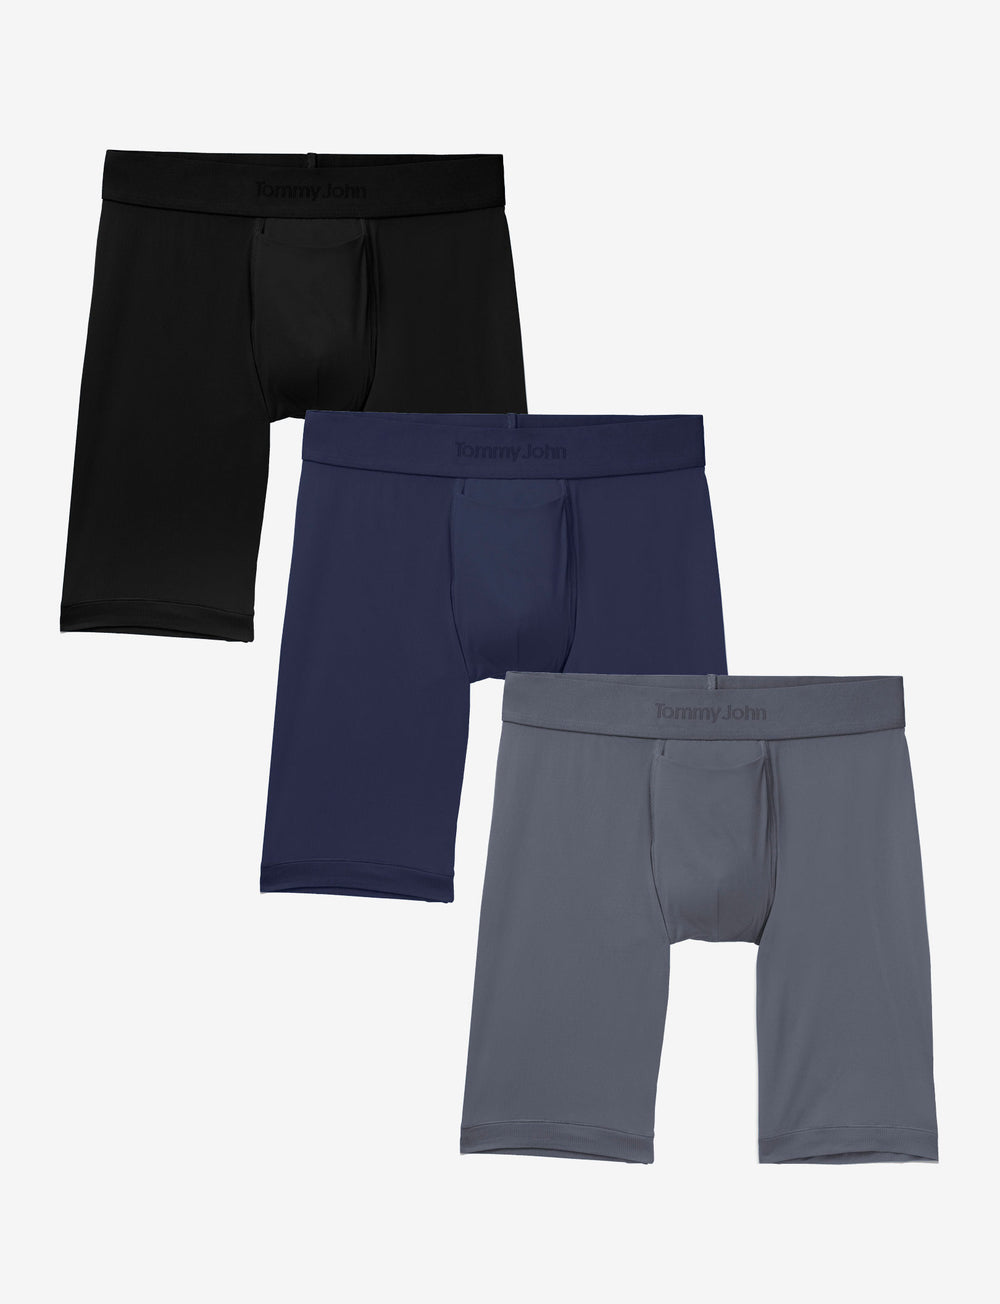 Air Boxer Brief 3 Pack Details Image